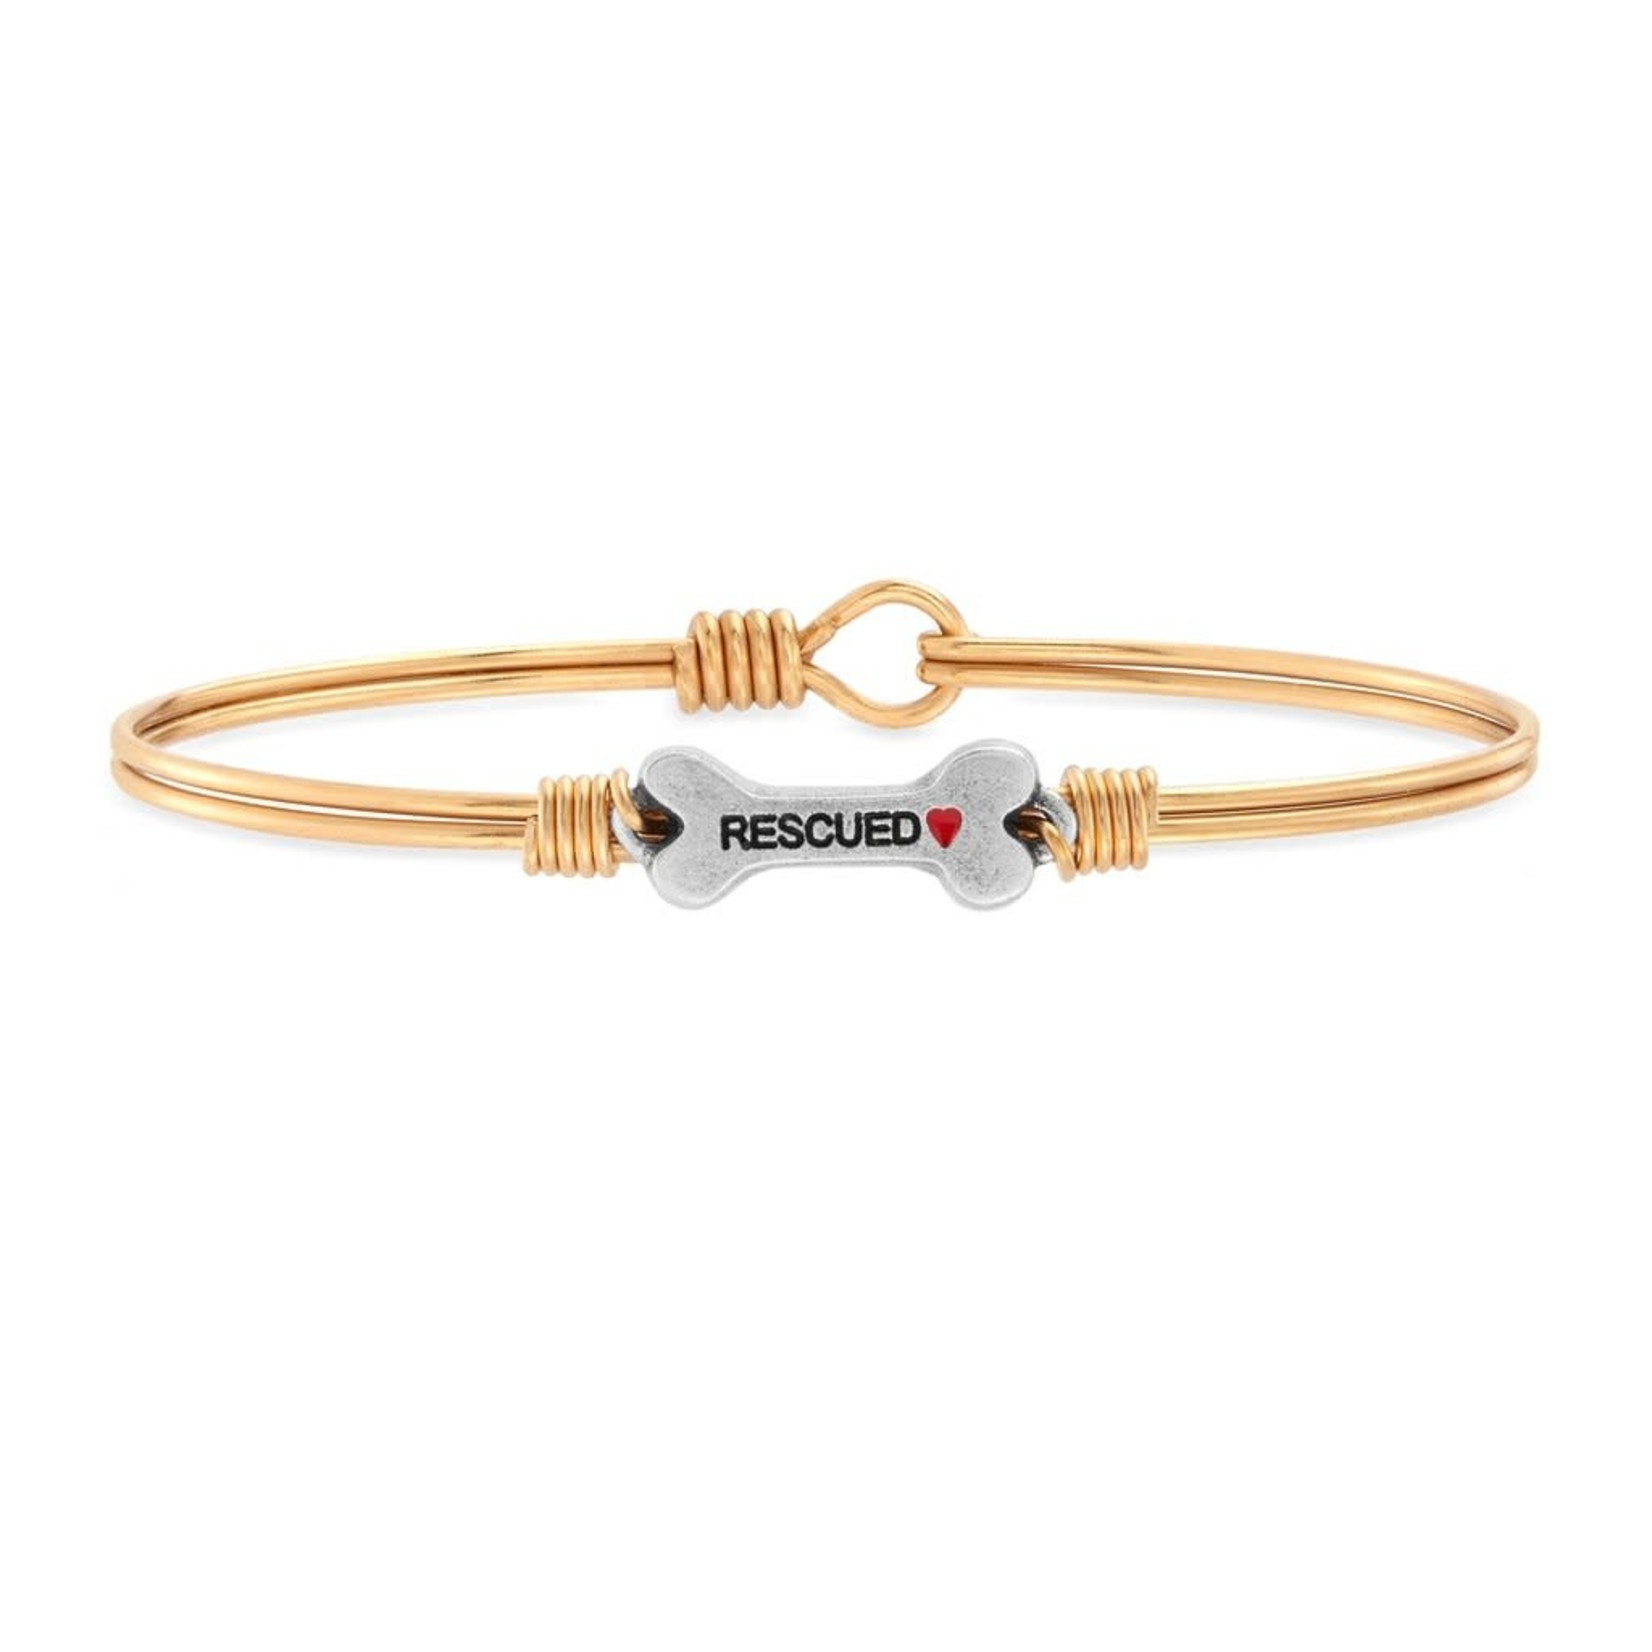 Luca+Danni Animal Rescue Bangle Bracelet Brass Tone - Regular